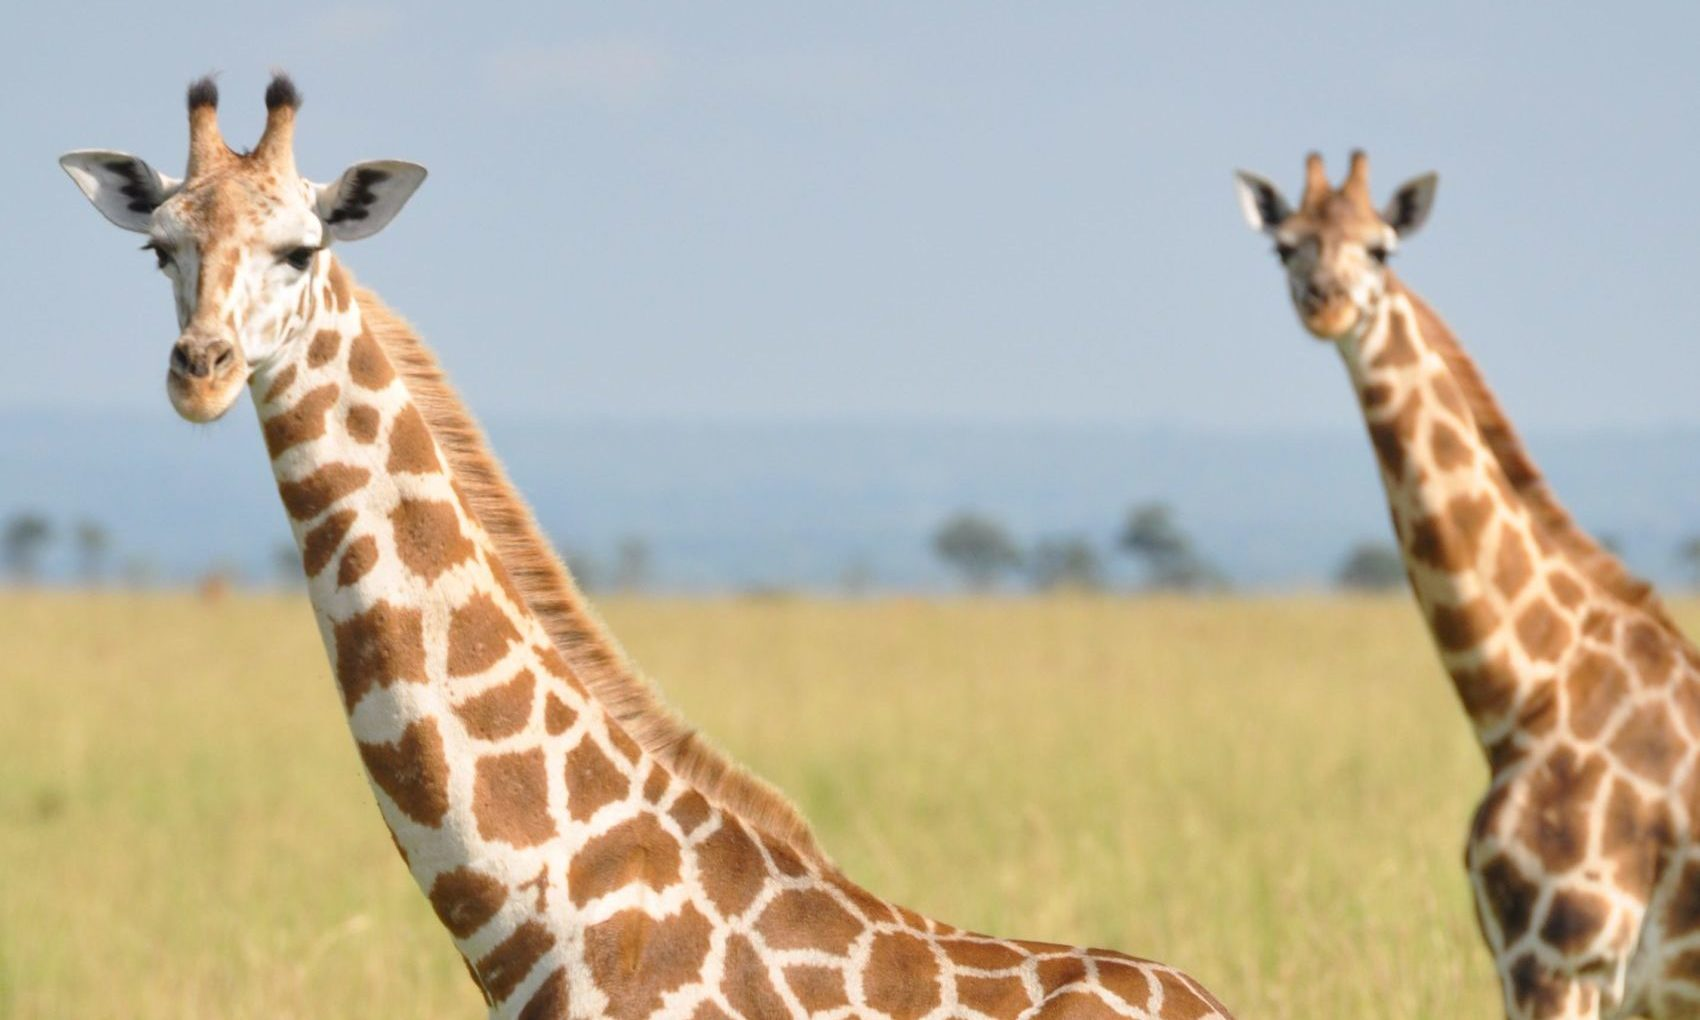 Giraffes are an endangered sopecies in parts of Africa. Pic: GCF.